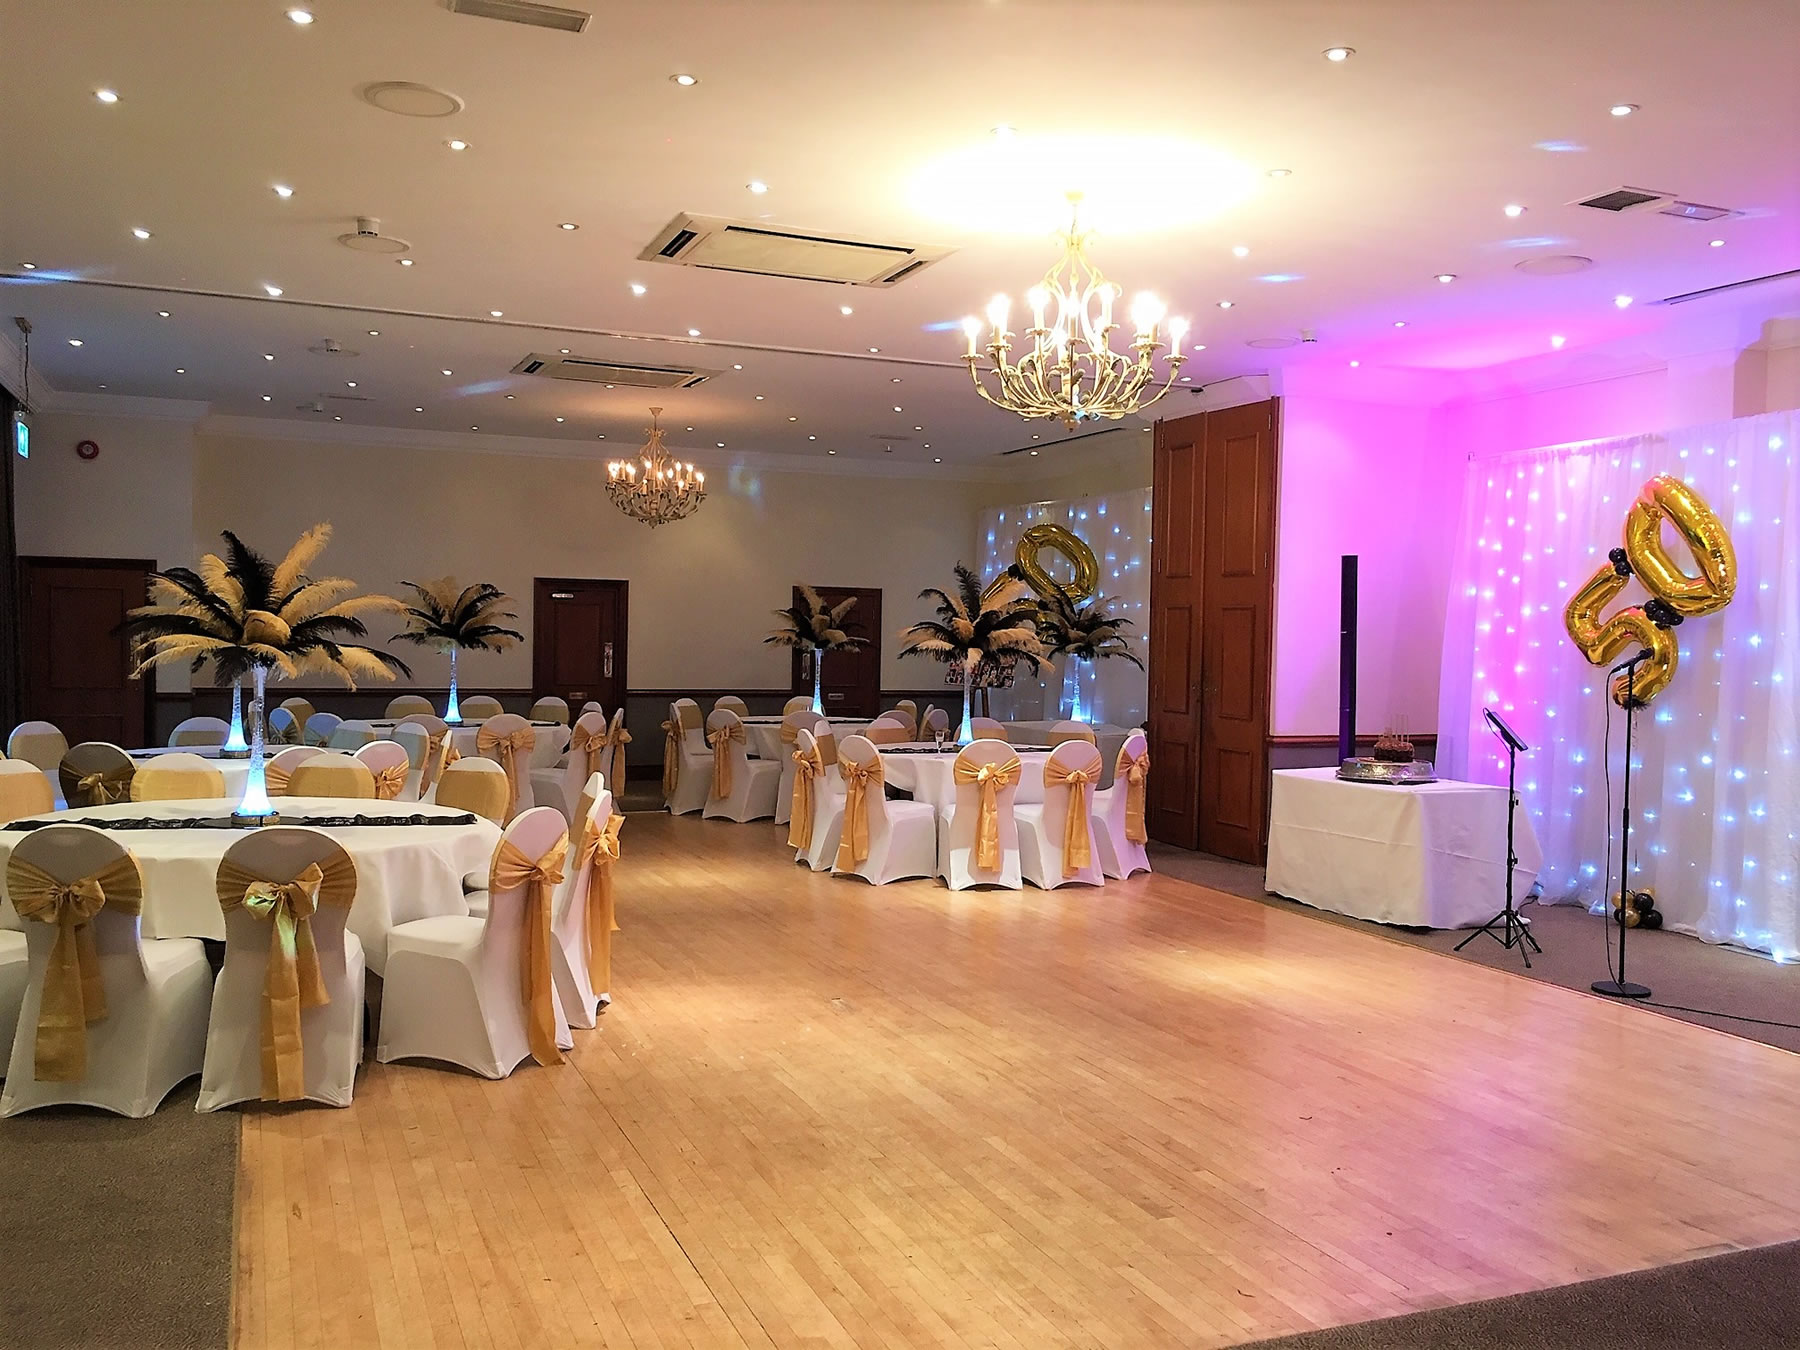 Function Room for Parties & Celebrations at The Ship Hotel Weybridge with large dance floor